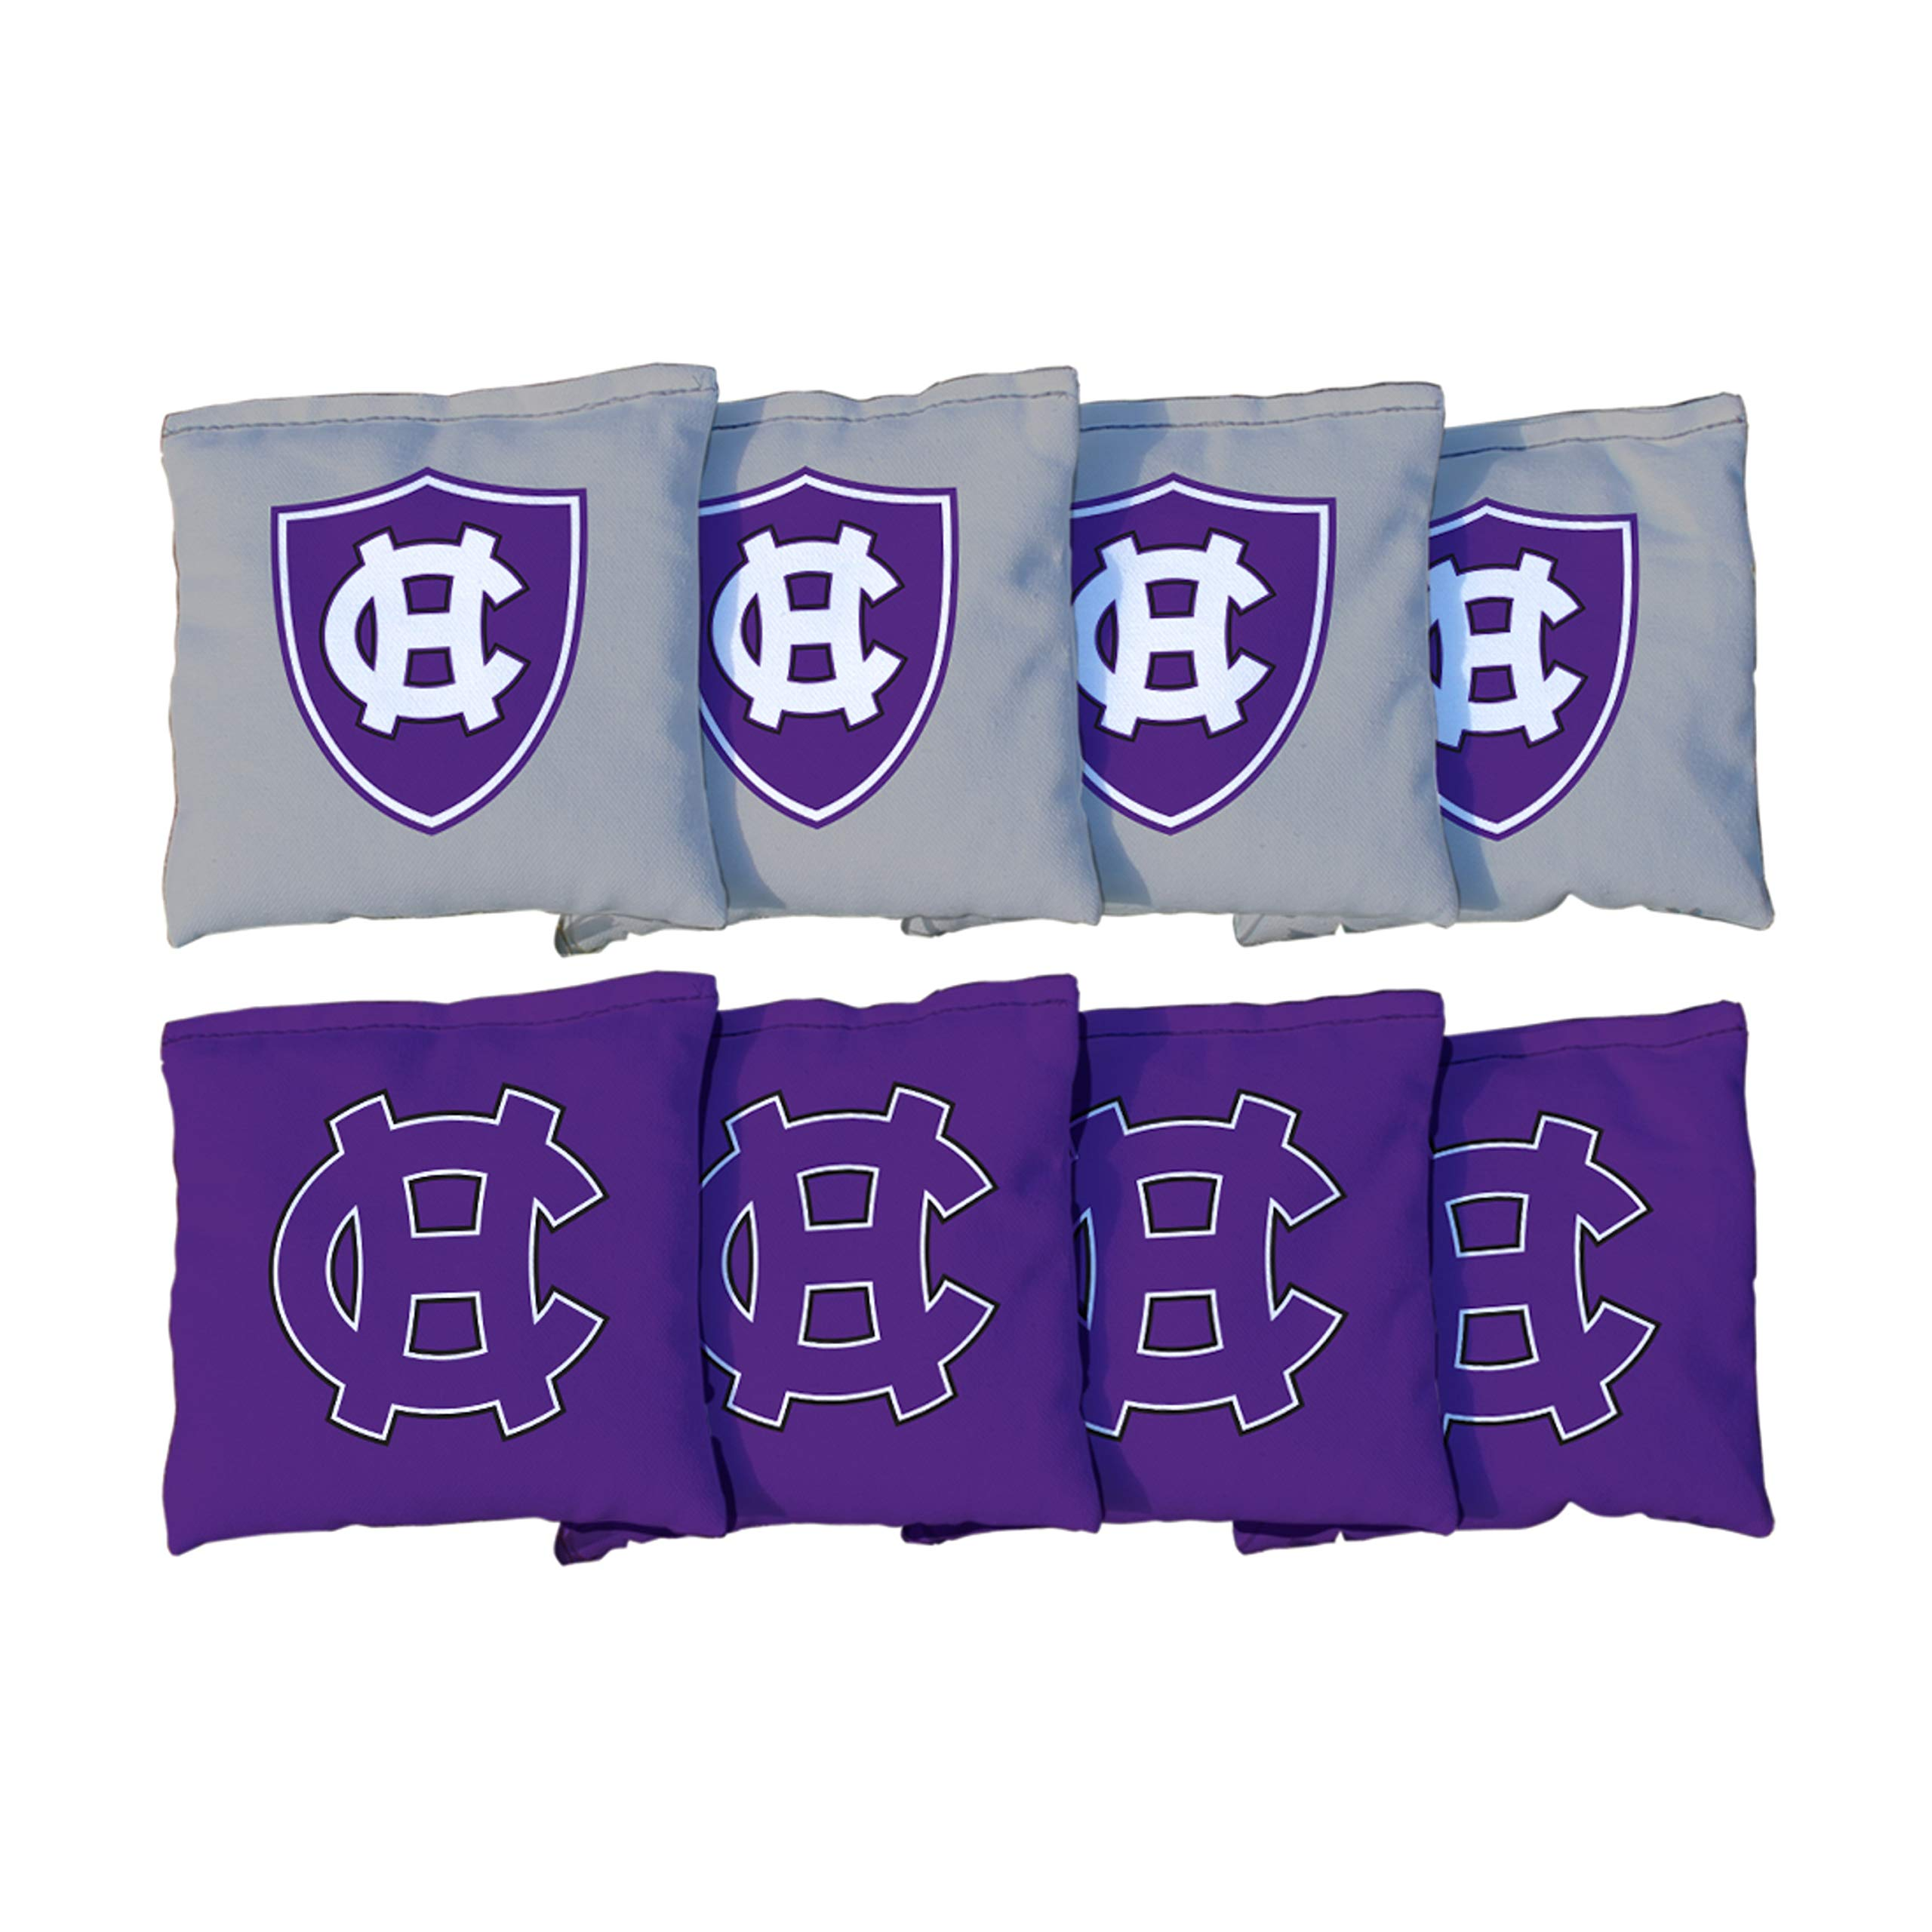 Victory Tailgate NCAA Collegiate Regulation Cornhole Game Bag Set (8 Bags Included, Corn-Filled) - College of The Holy Cross Crusaders by Victory Tailgate